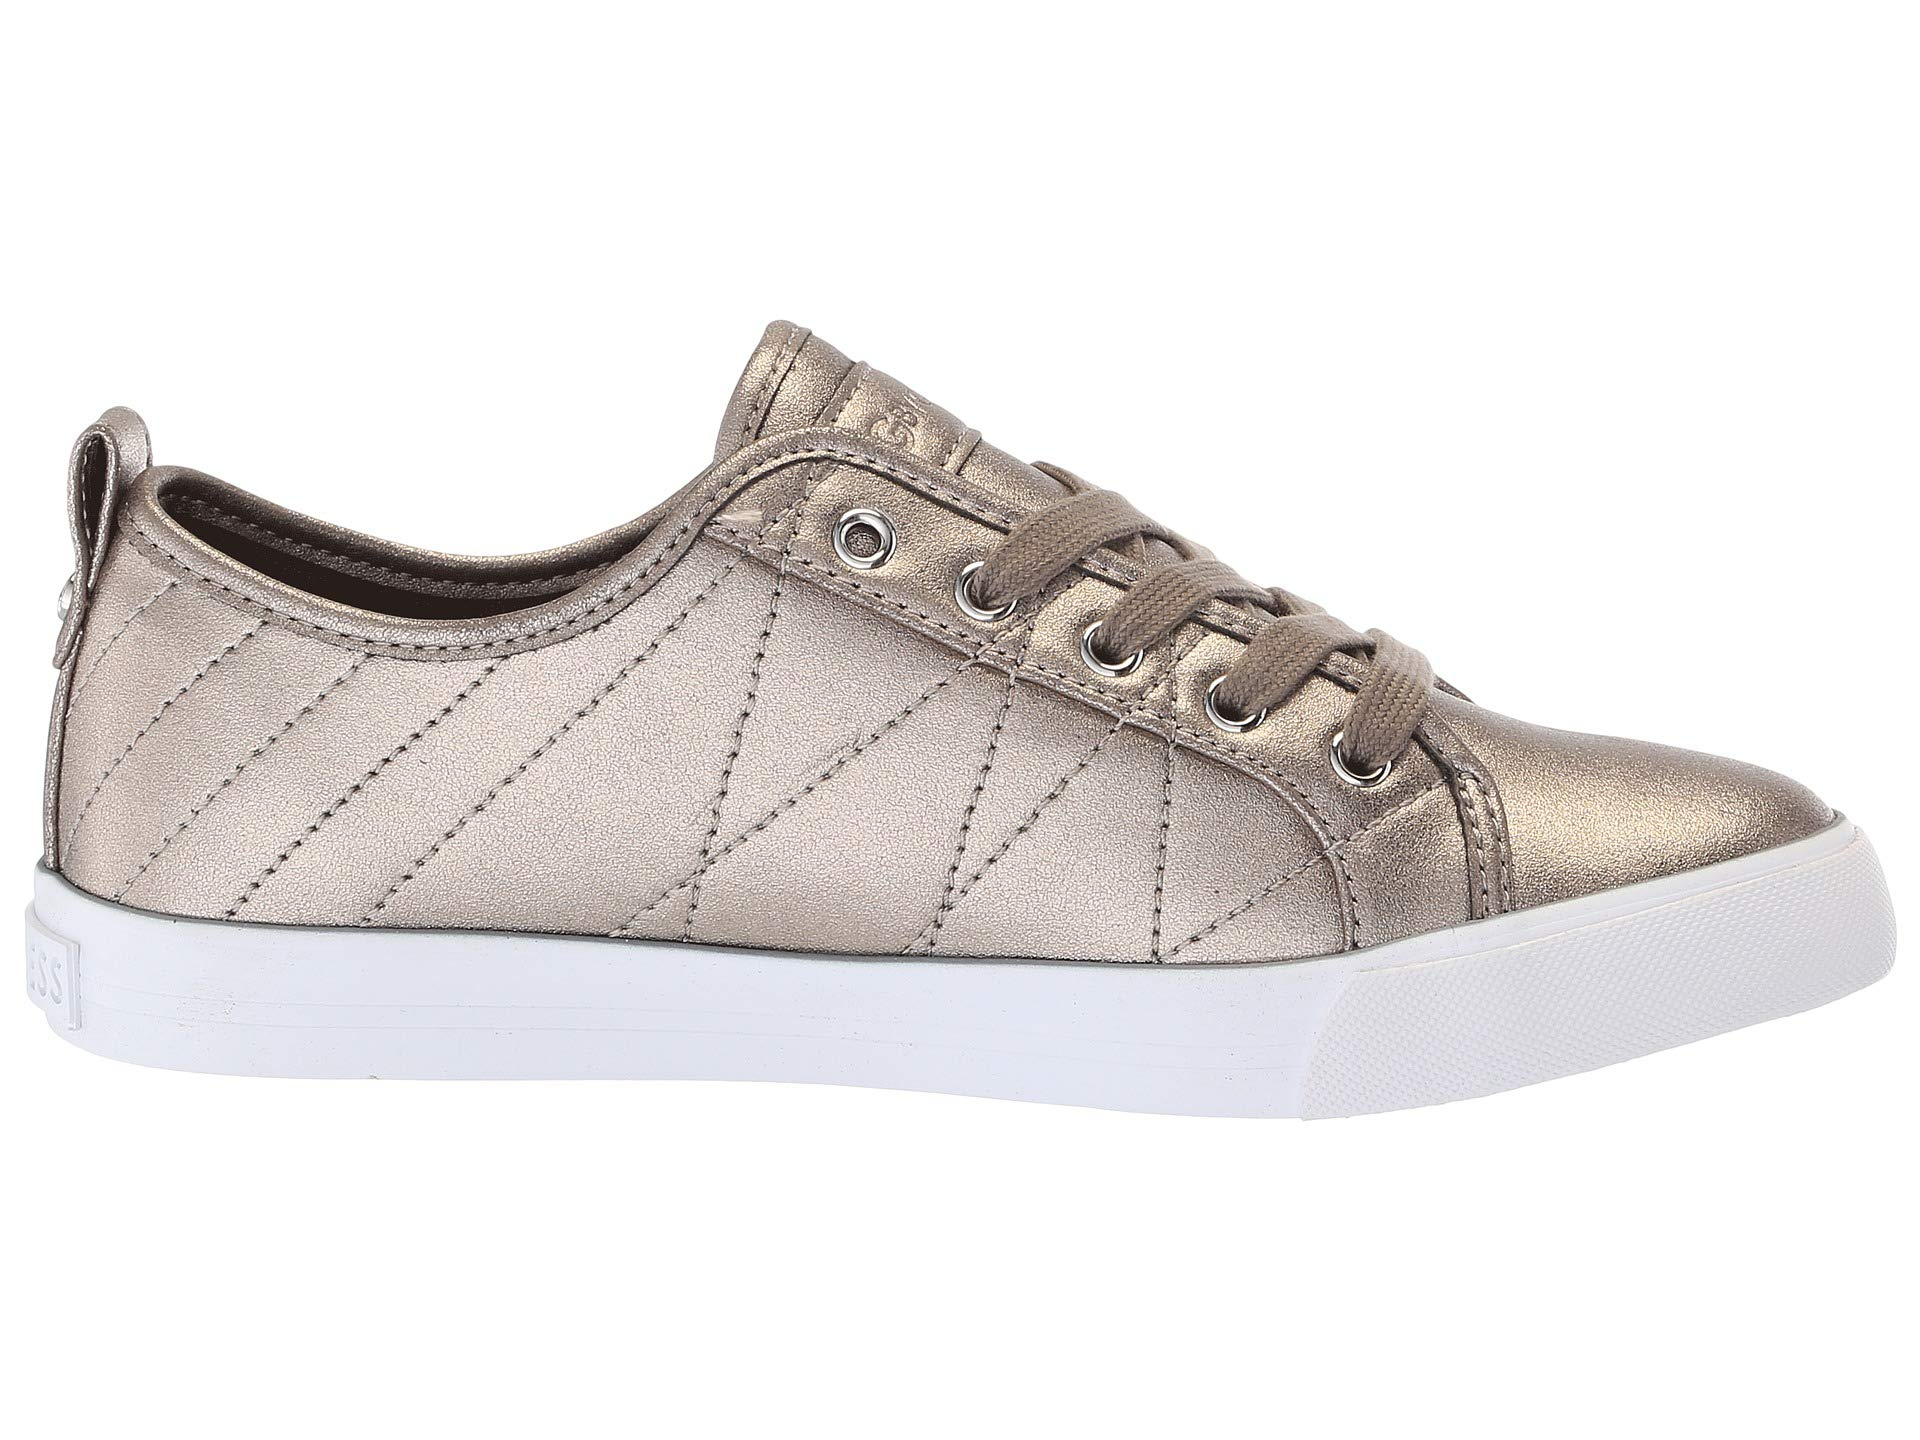 G Orfin Orfin By Pewter Guess Guess Pewter By G By Guess G rXwvBqr